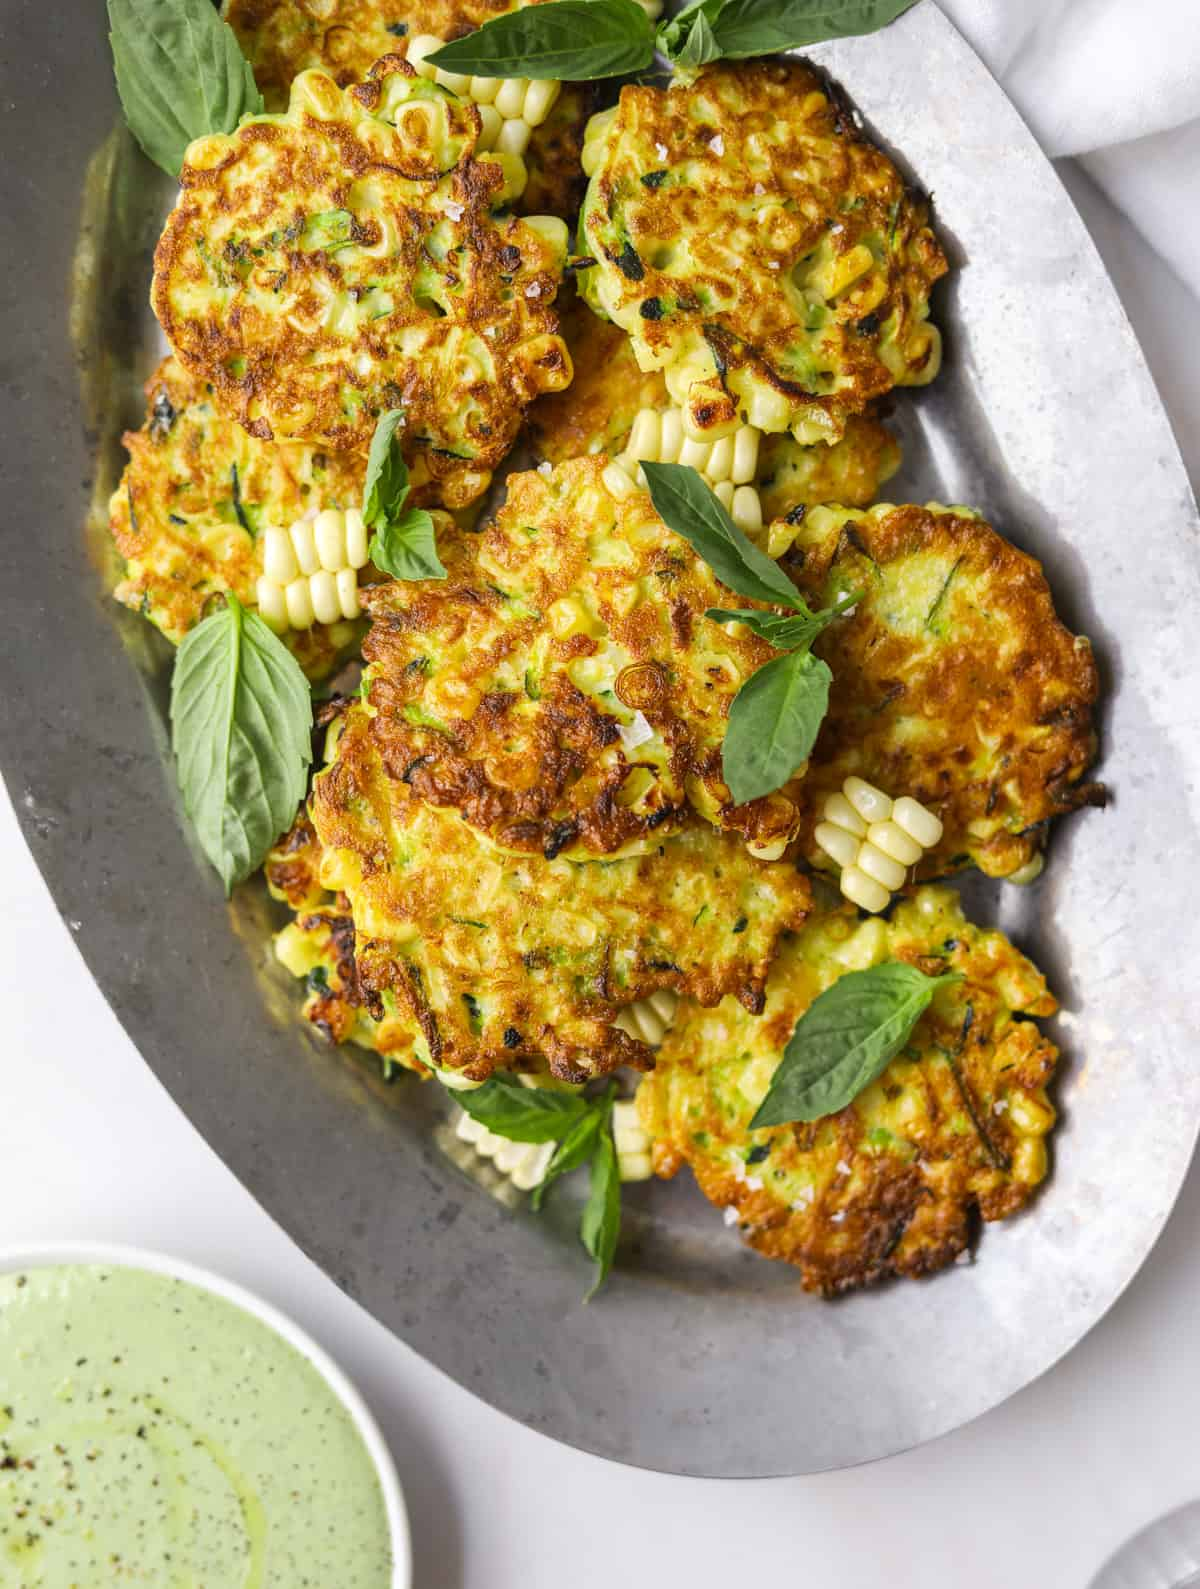 a close up image of corn and zucchini fritters on a silver tray